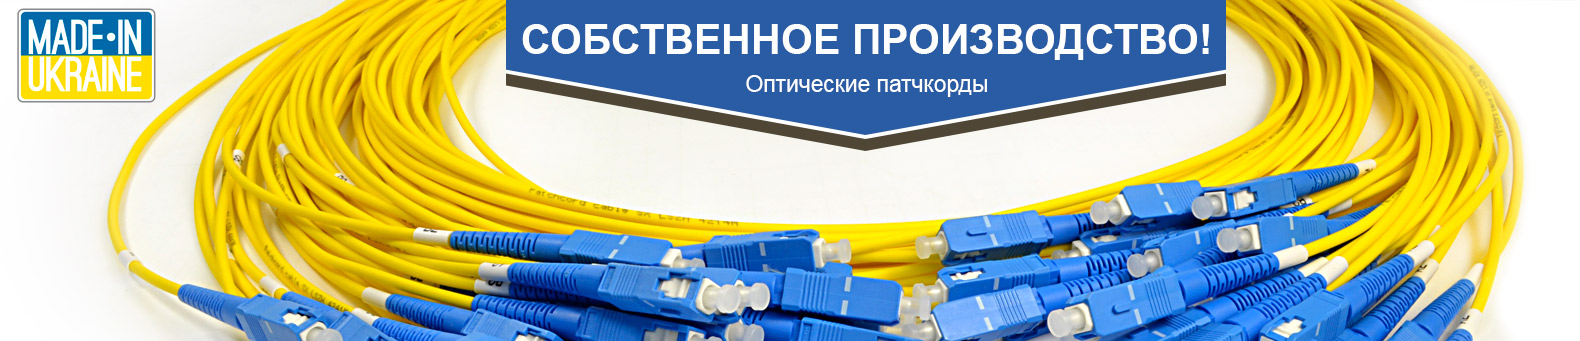 optical patch cords ukraine